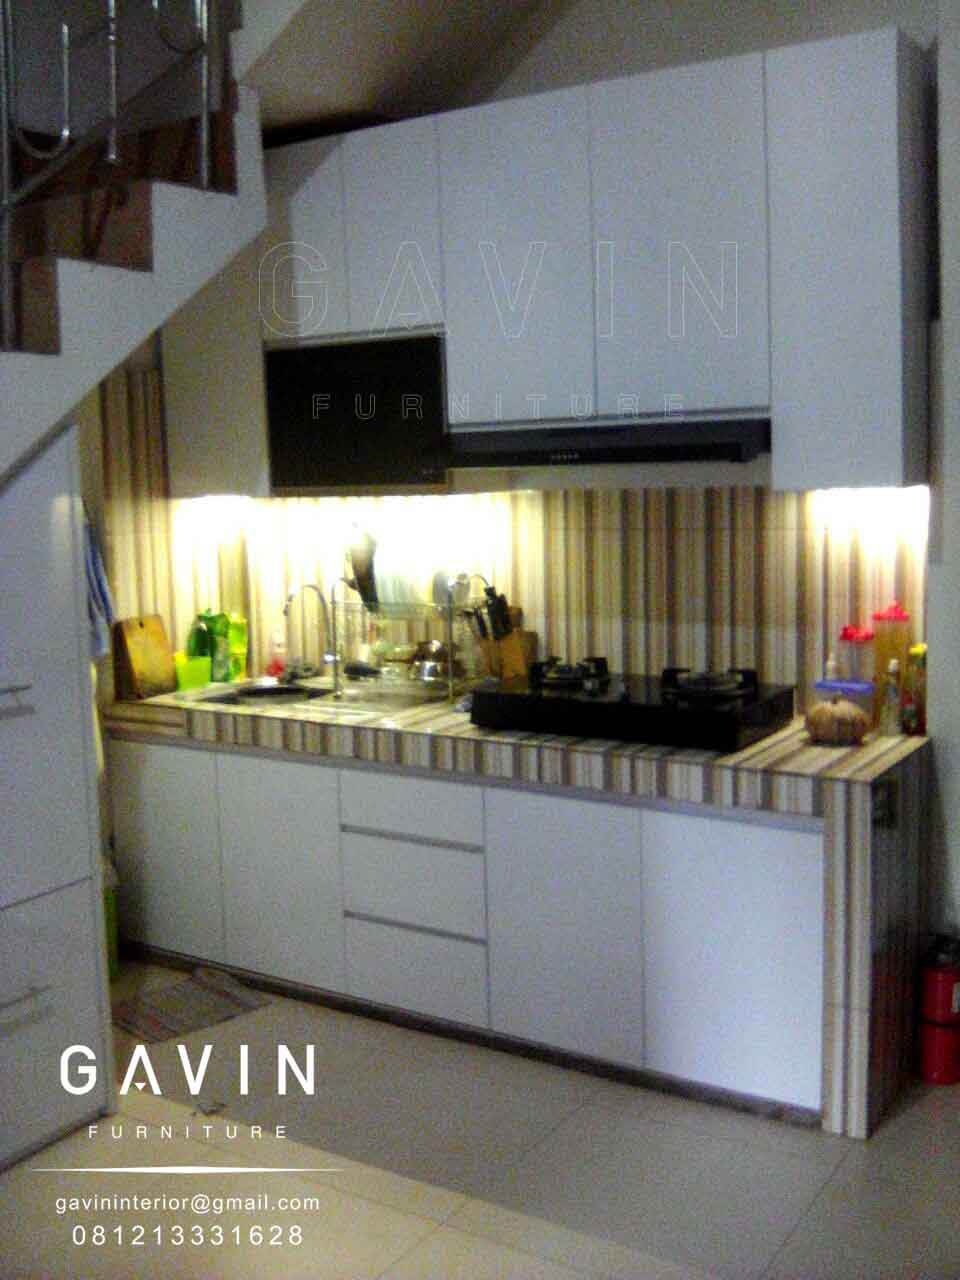 Desain Kitchen Set Dan Harganya Kitchen Appliances Tips And Review